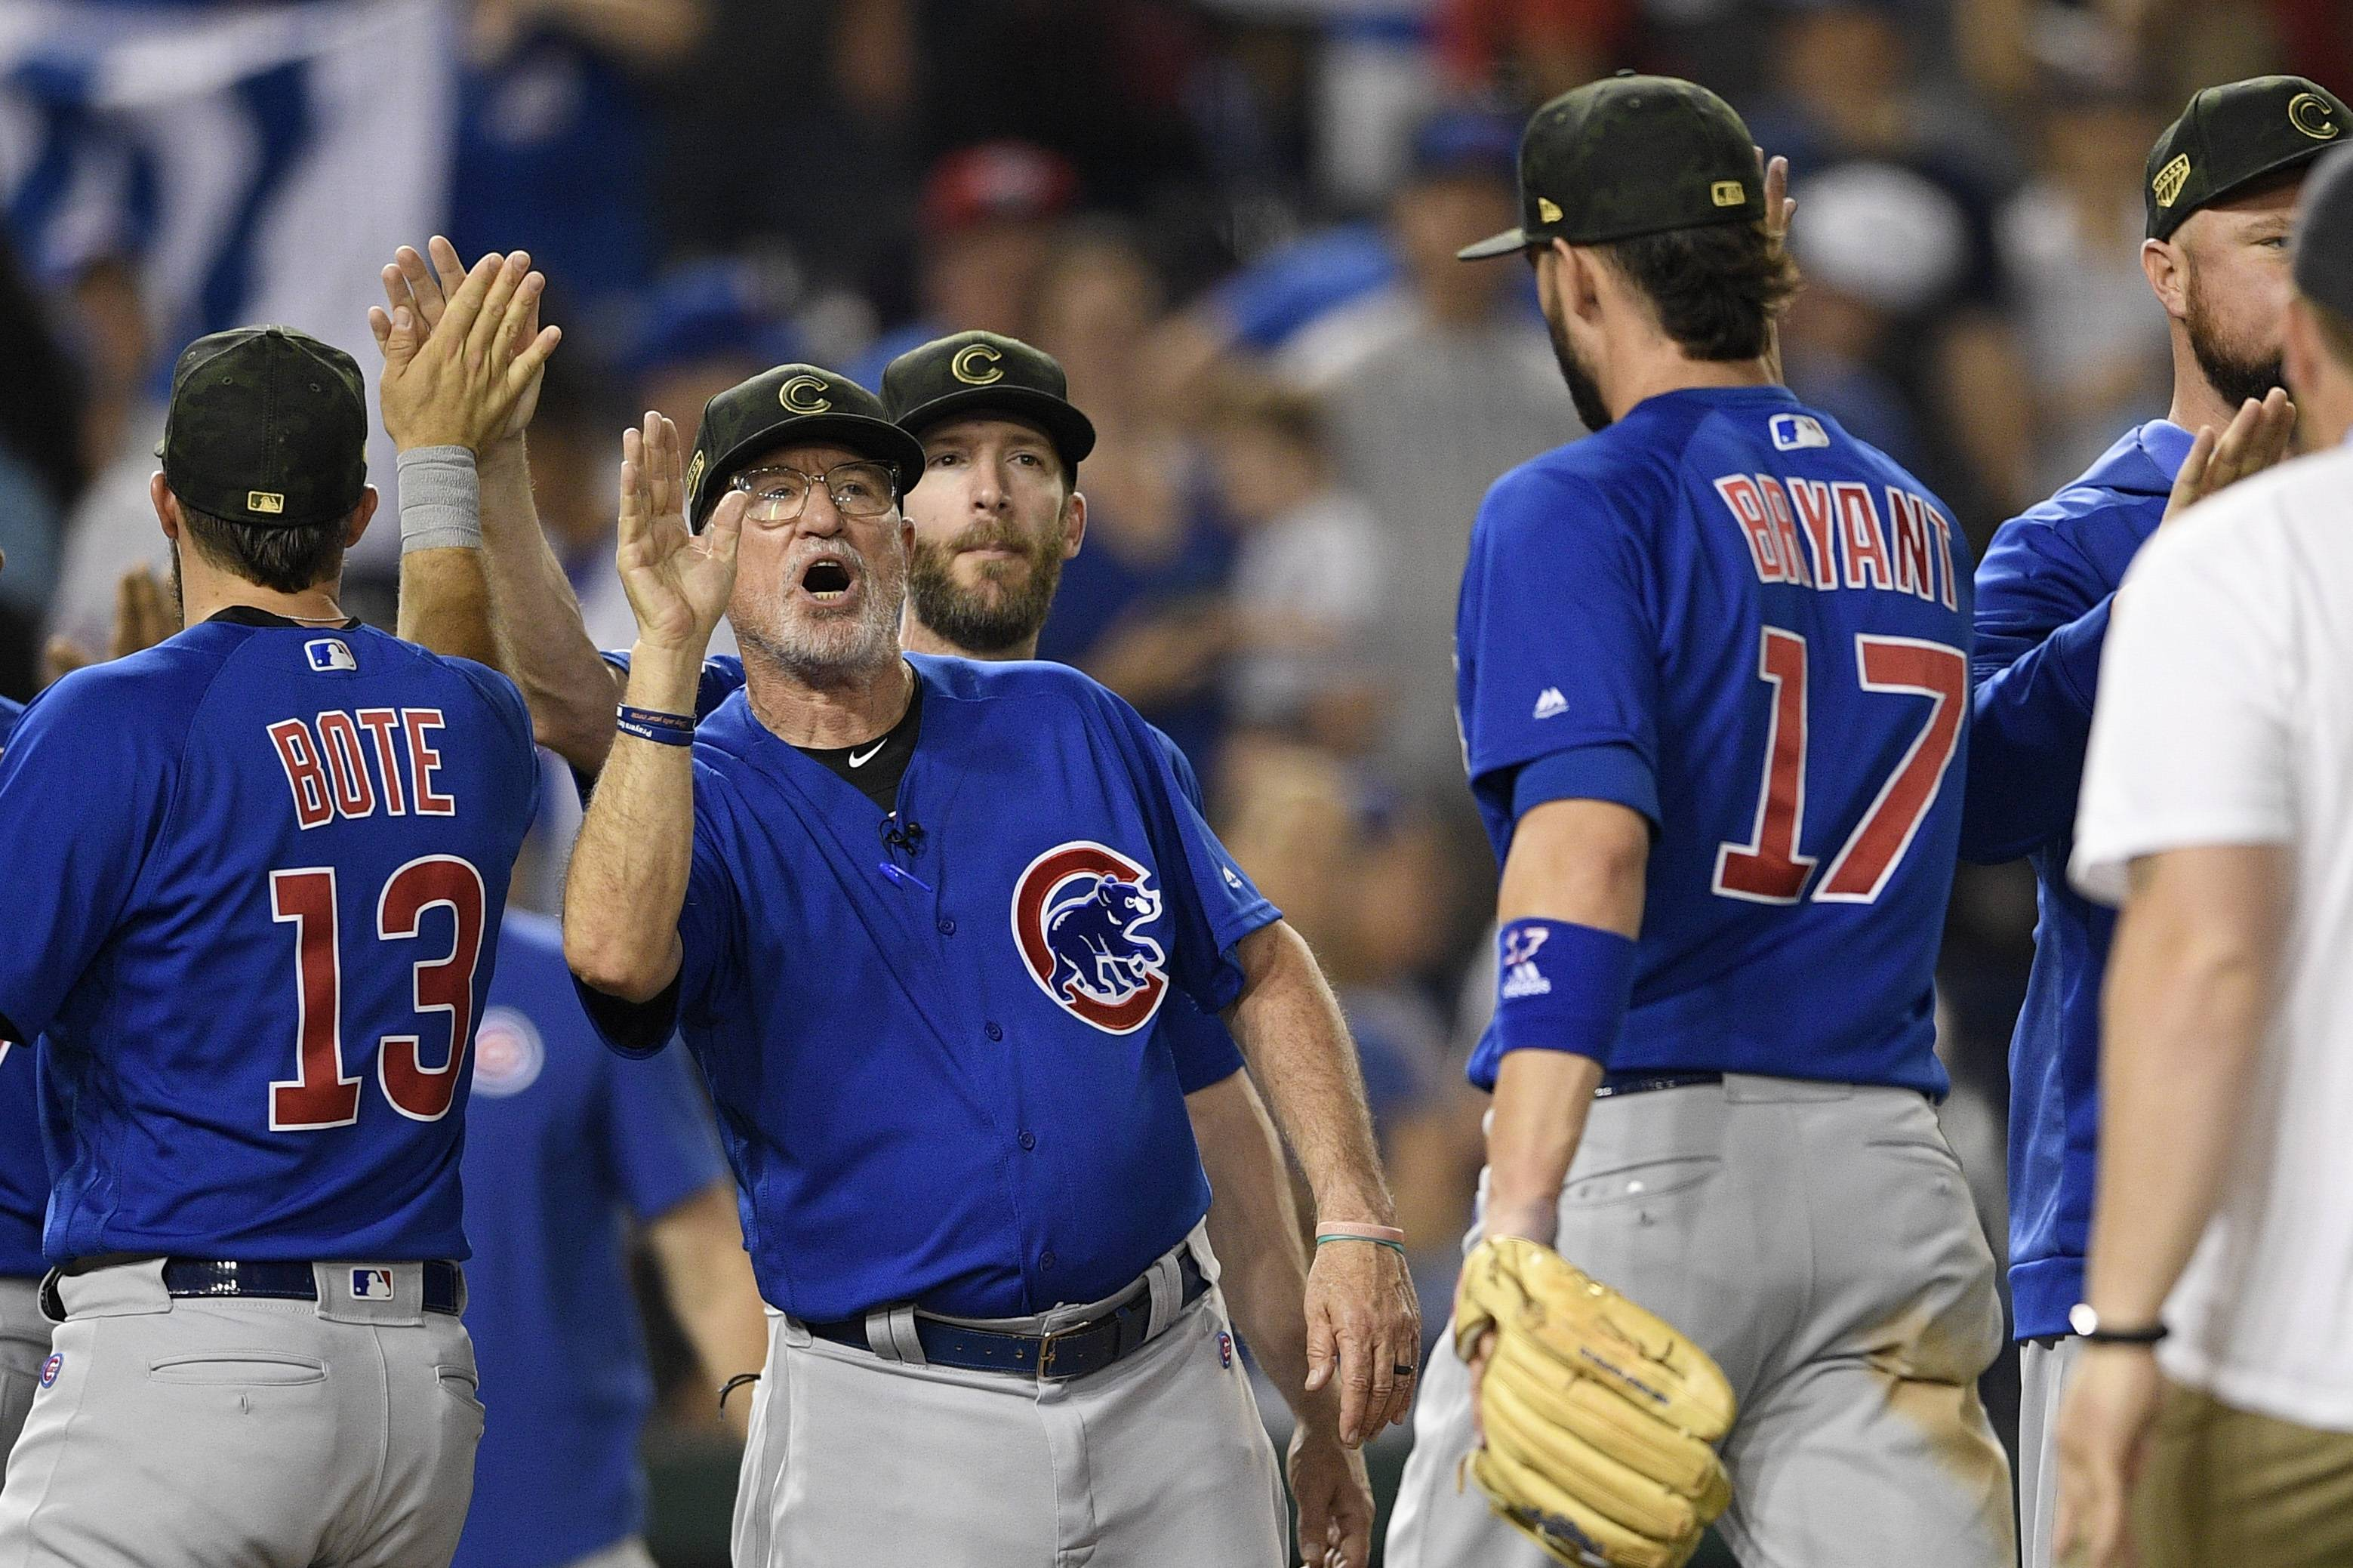 Chicago Cubs manager Joe Maddon, left, celebrates with Kris Bryant (17) after a baseball game against the Washington Nationals, Sunday, May 19, 2019, in Washington. The Cubs won 6-5. (AP Photo/Nick Wass)